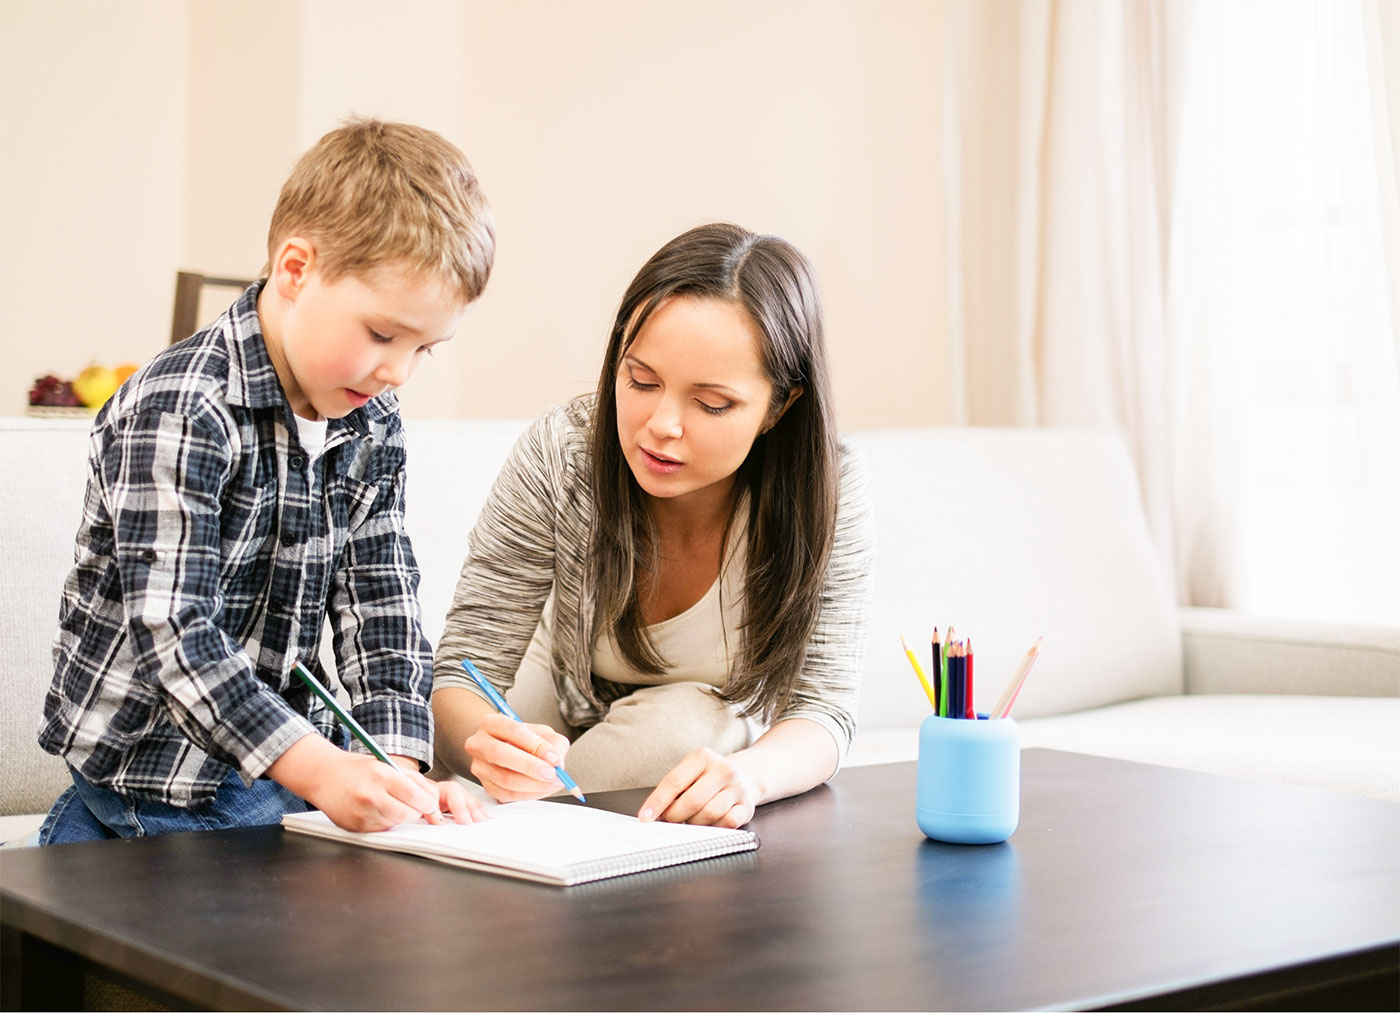 You'd never know that these innocuous phrases may not be the best to tell your kids. After all, we hear and say them all the time. But try to avoid these 5 things you tell your kids but probably shouldn't.